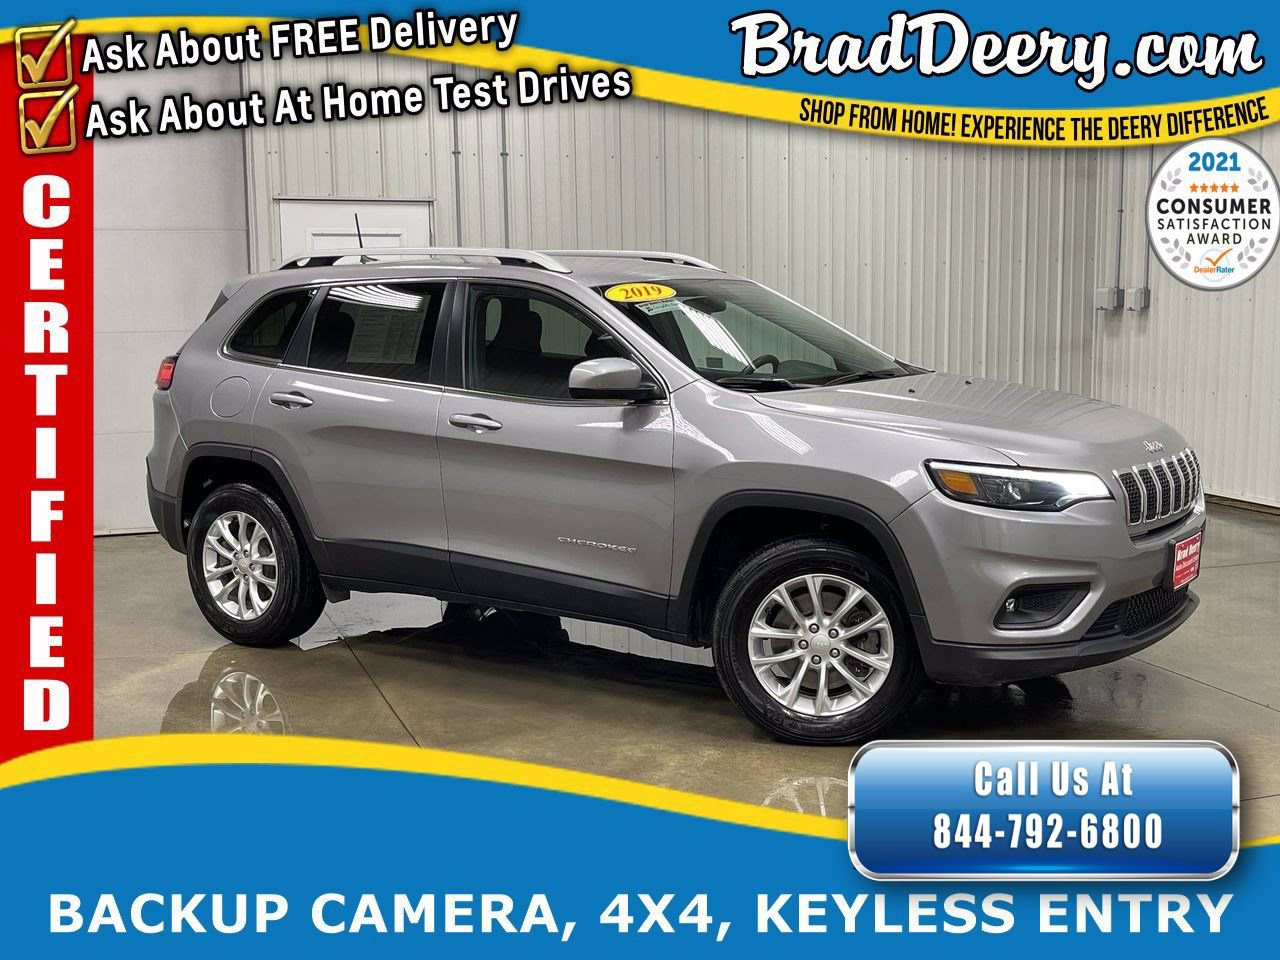 2019 Jeep Cherokee Latitude 4x4    **JEEP CERTIFIED** - **1-OWNER** w/ 3.2L V6, Back-Up Camera, Selec-Terrain System